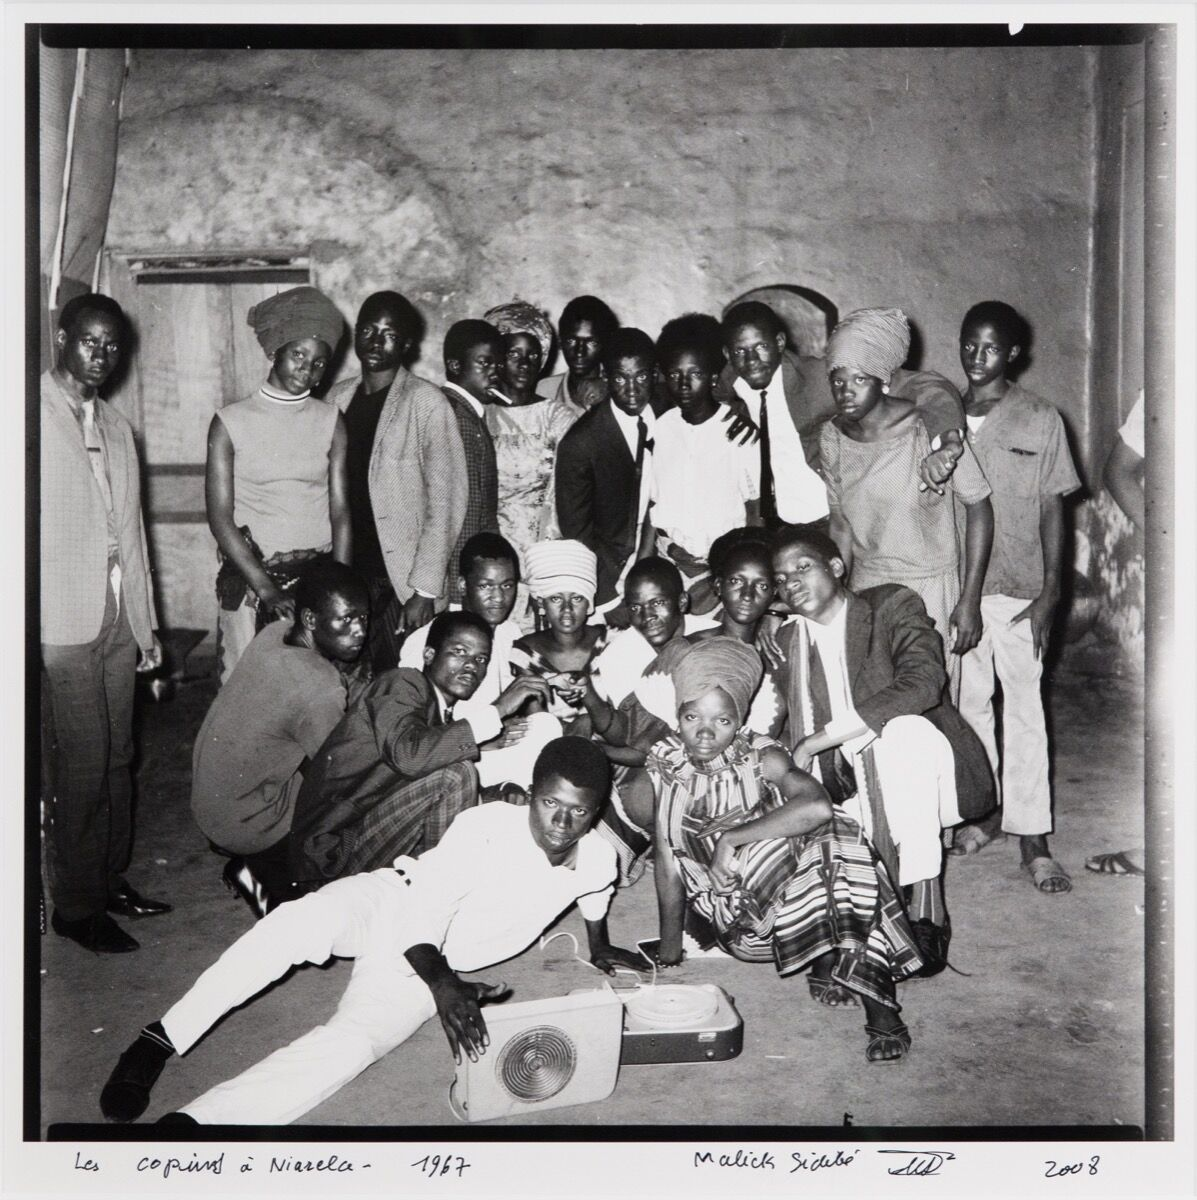 Malick Sidibé, Les copins à Niarela, 1967/2008. Courtesy of Jack Shaiman Gallery.